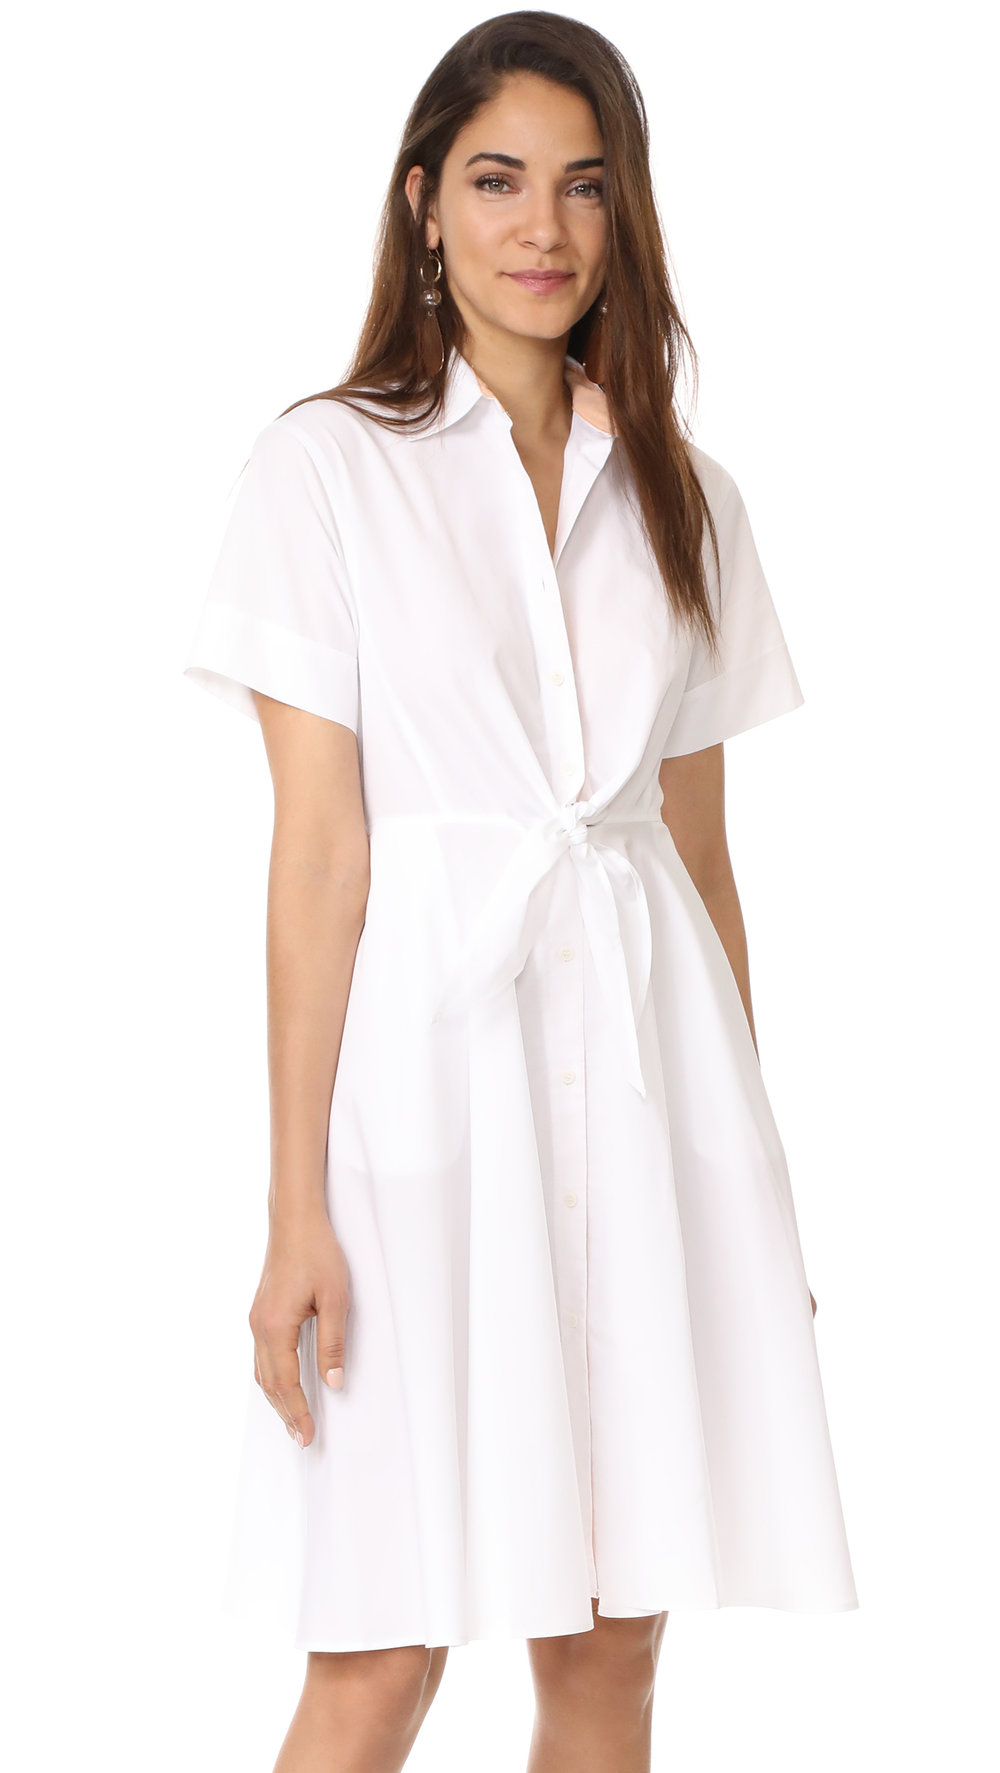 DVF white shirtdress